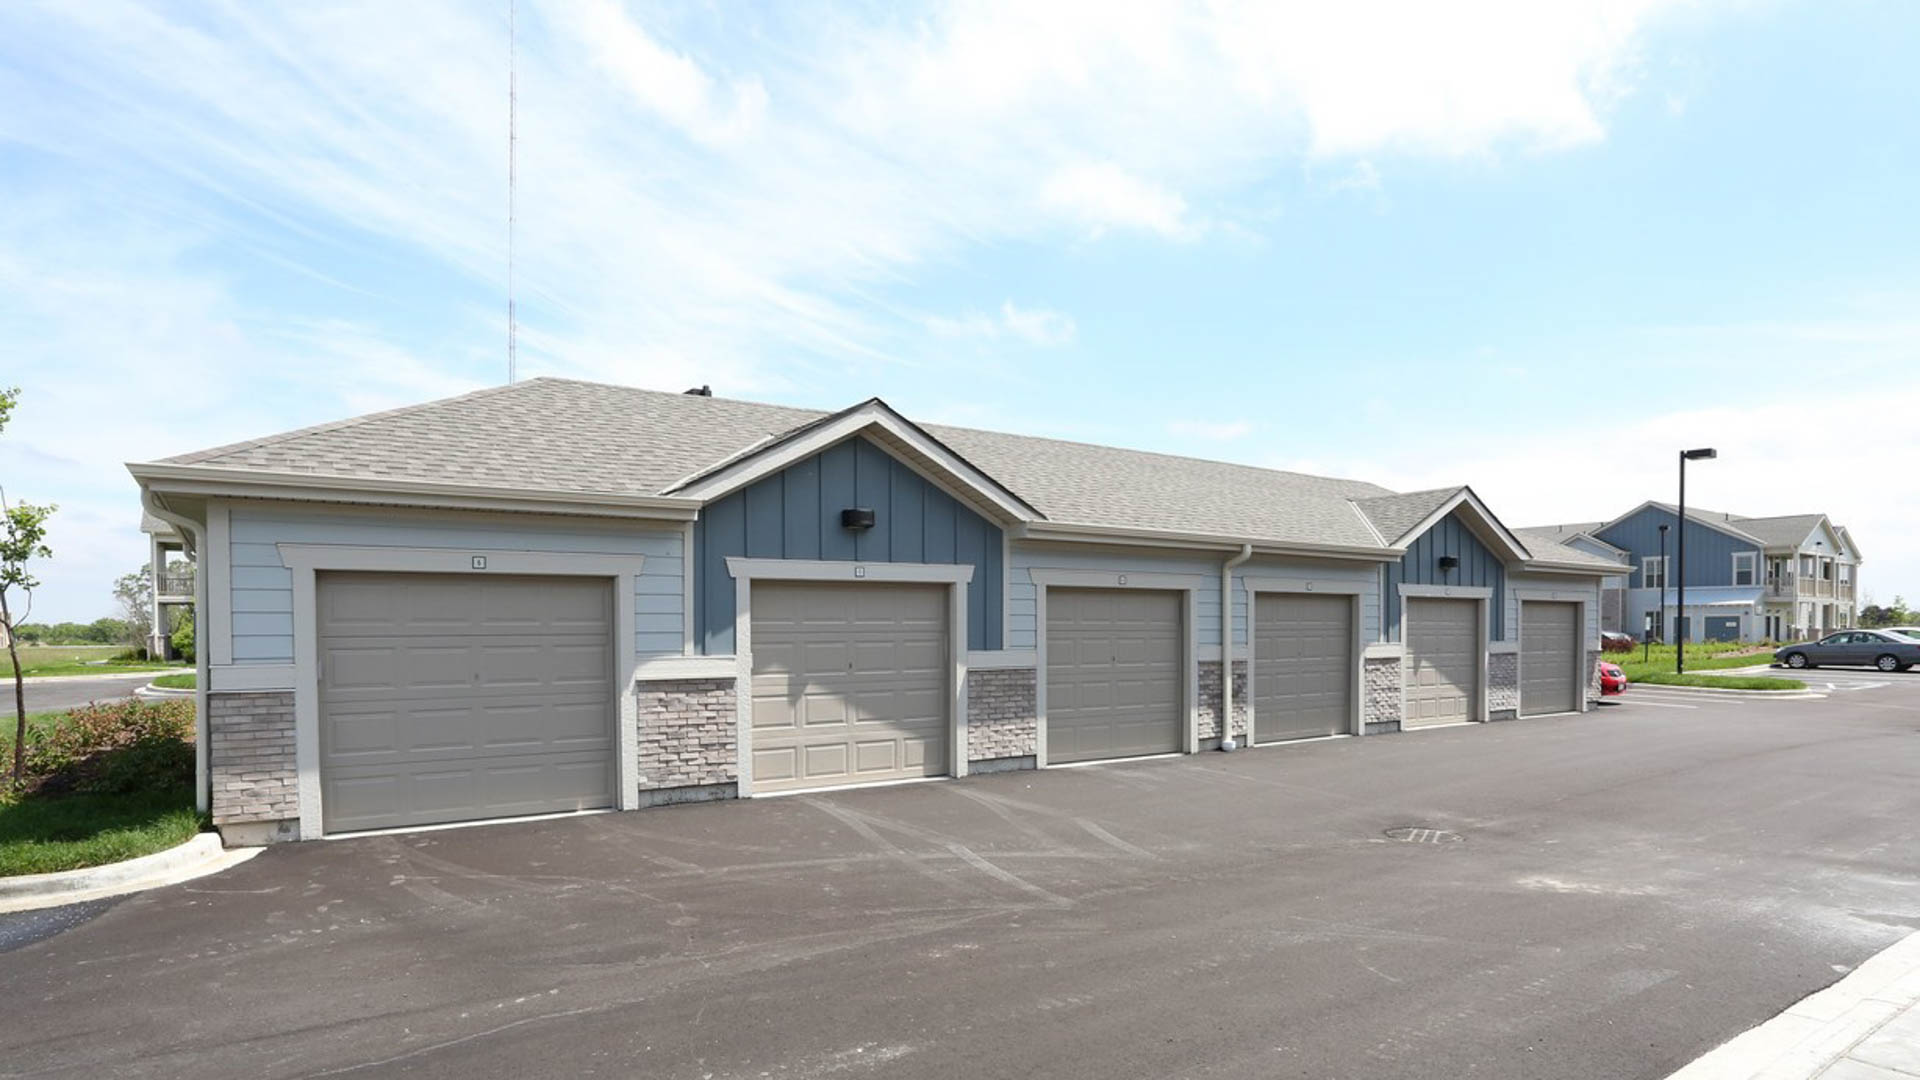 Detached Garages at Springs at Sun Prairie Apartments in Sun Prairie